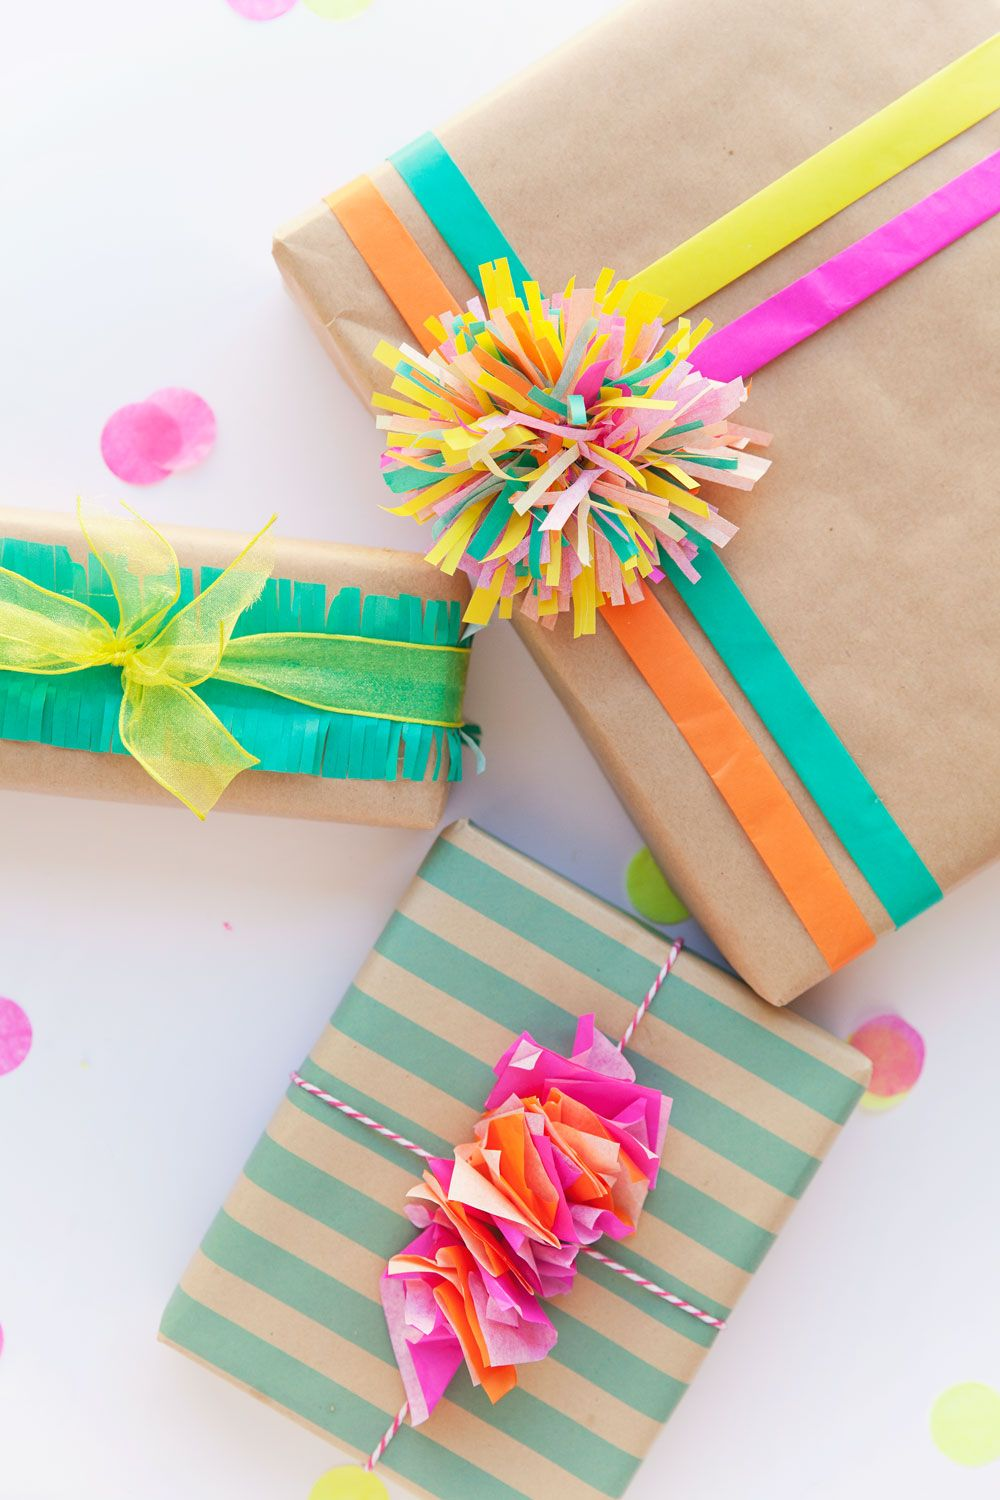 gift wrapping paper must have tax id number